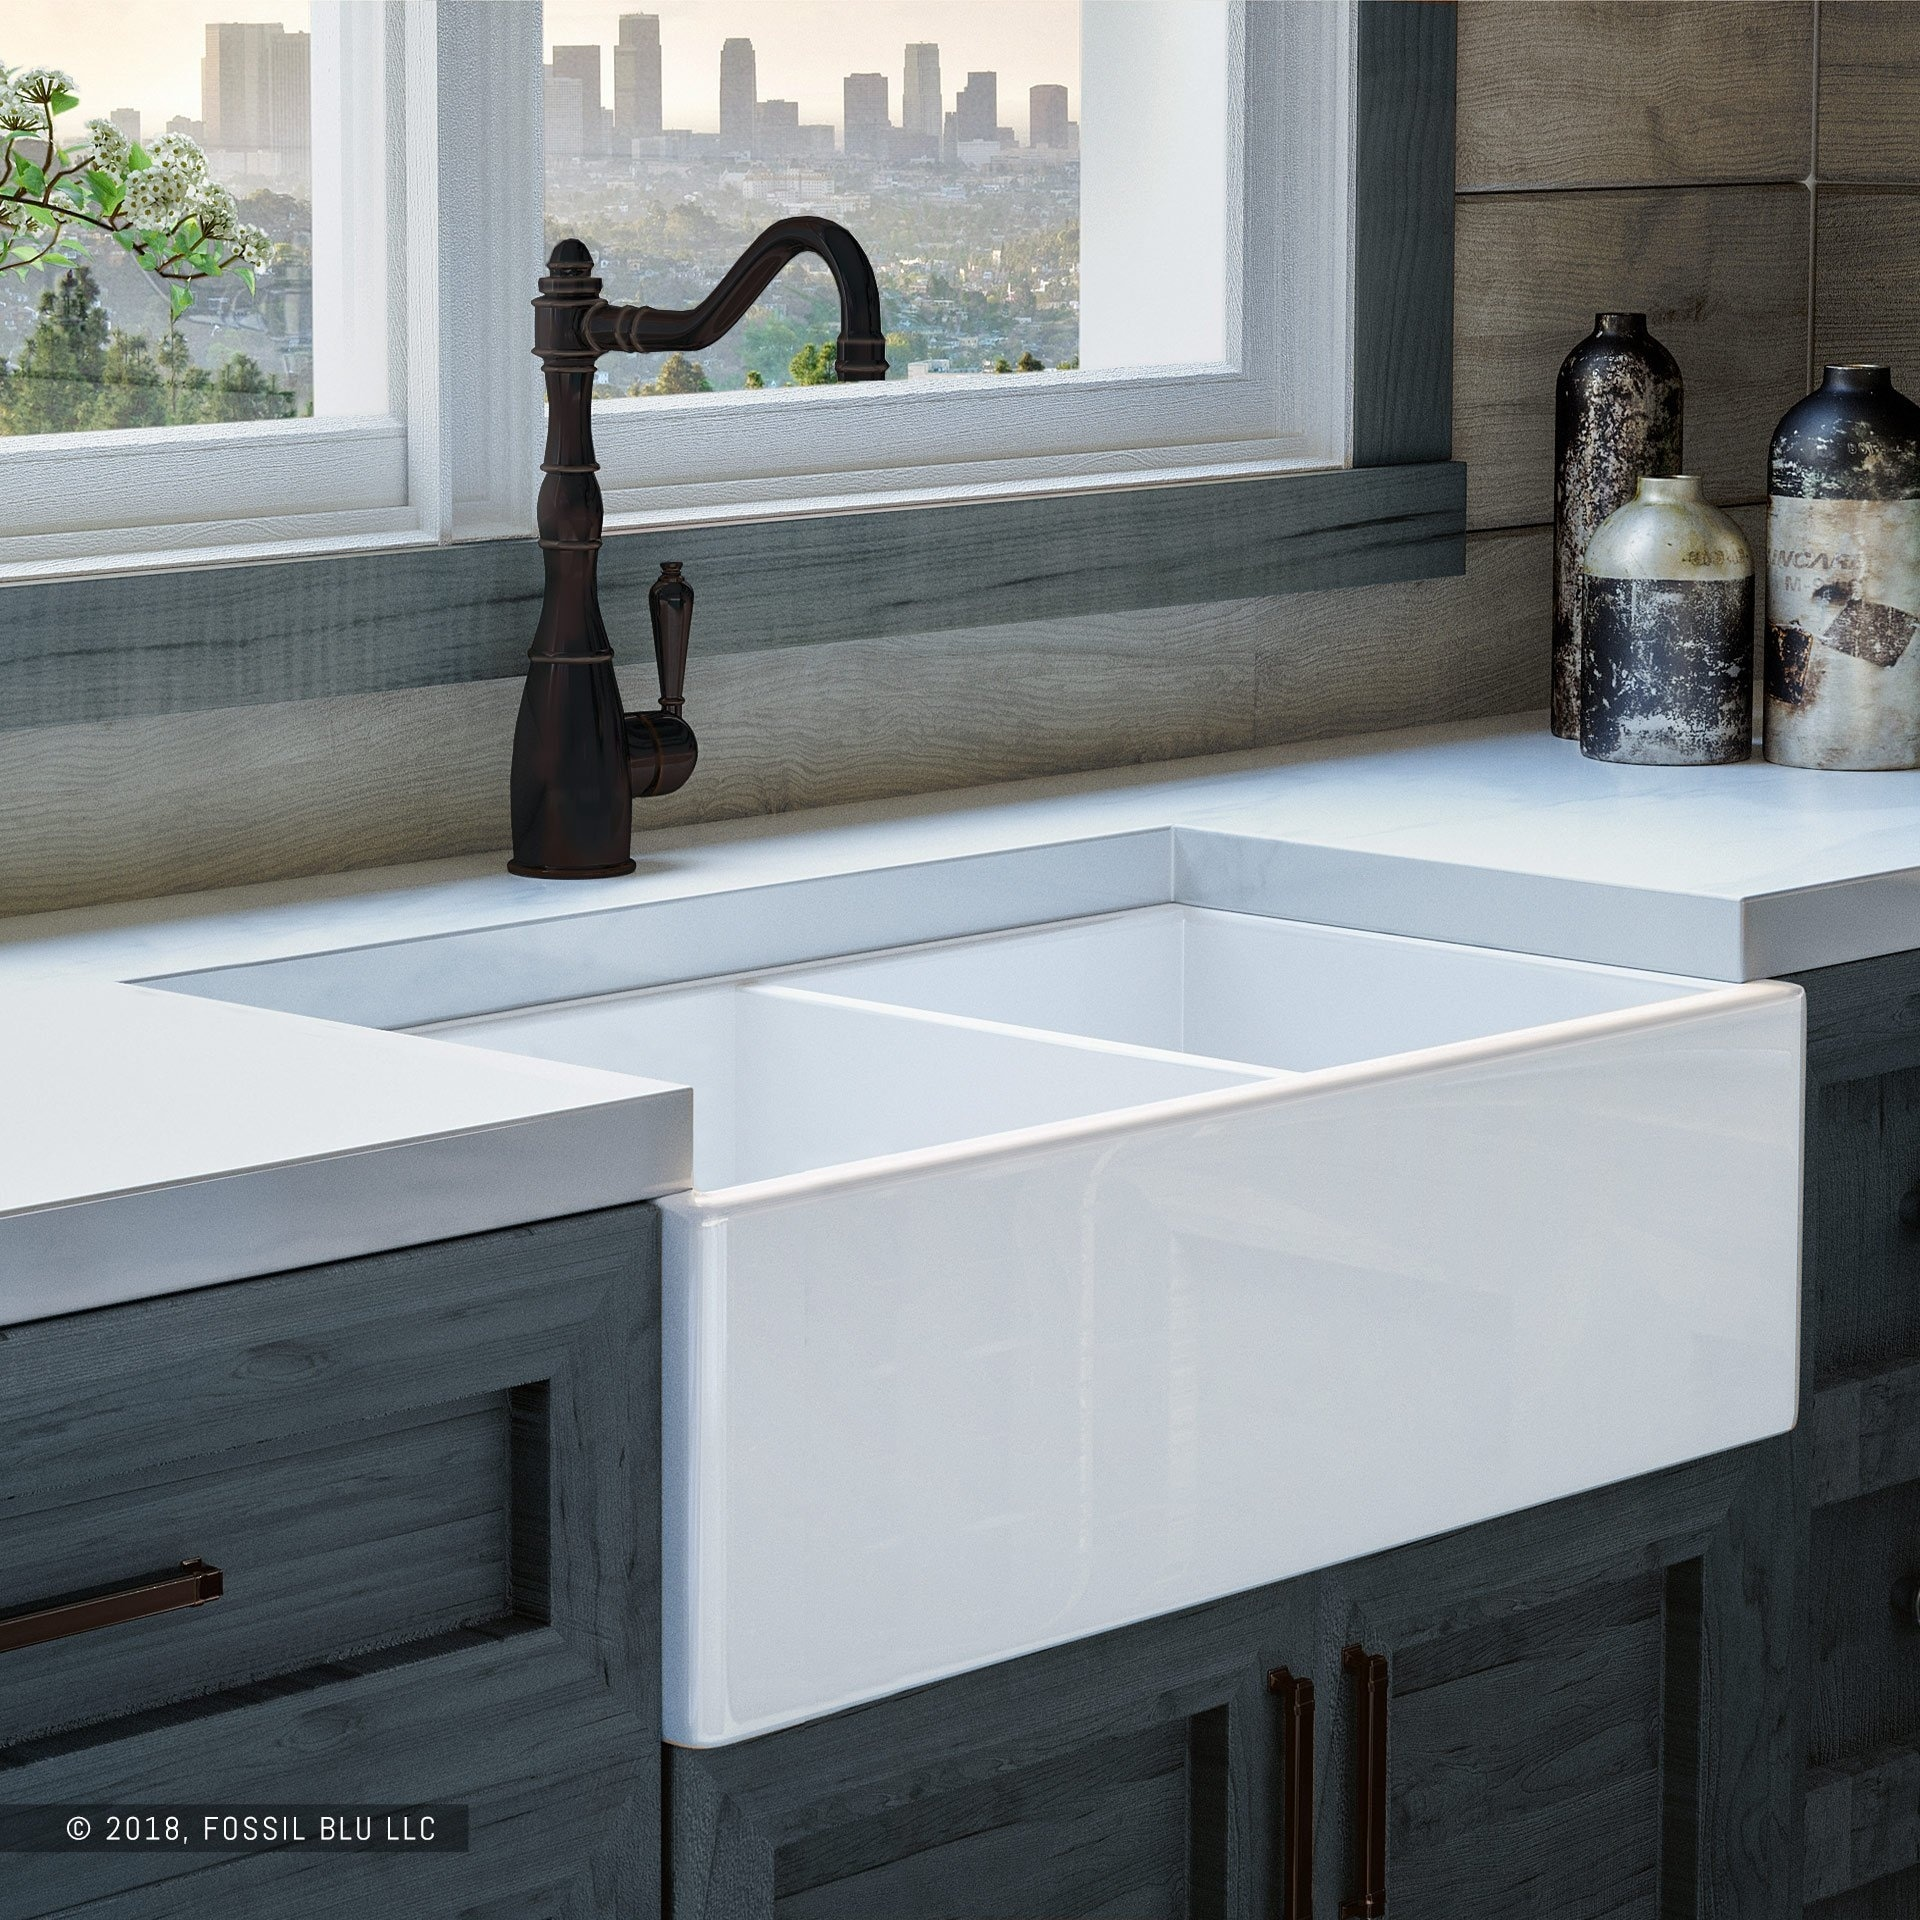 Luxury 33 Inch Modern Fireclay Farmhouse Kitchen Sink White Double Bowl Flat Front Includes Grid And Drain By Fossil Blu Overstock 21834219